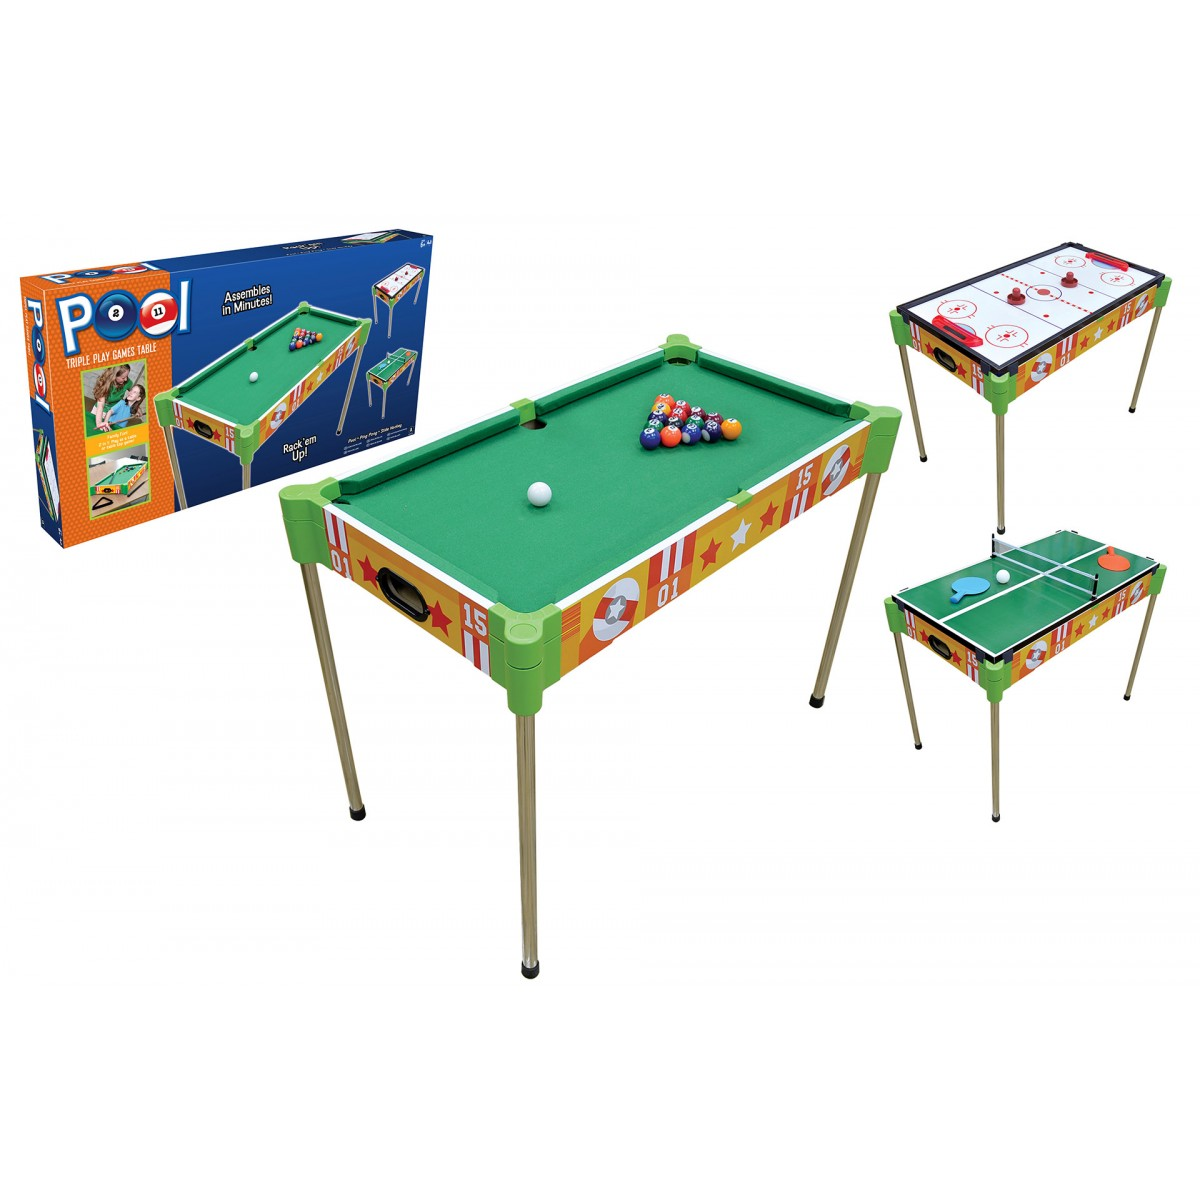 32u201d Triple Play Wood Pool Table U0026 Tabletop (+Ping Pong + Slide